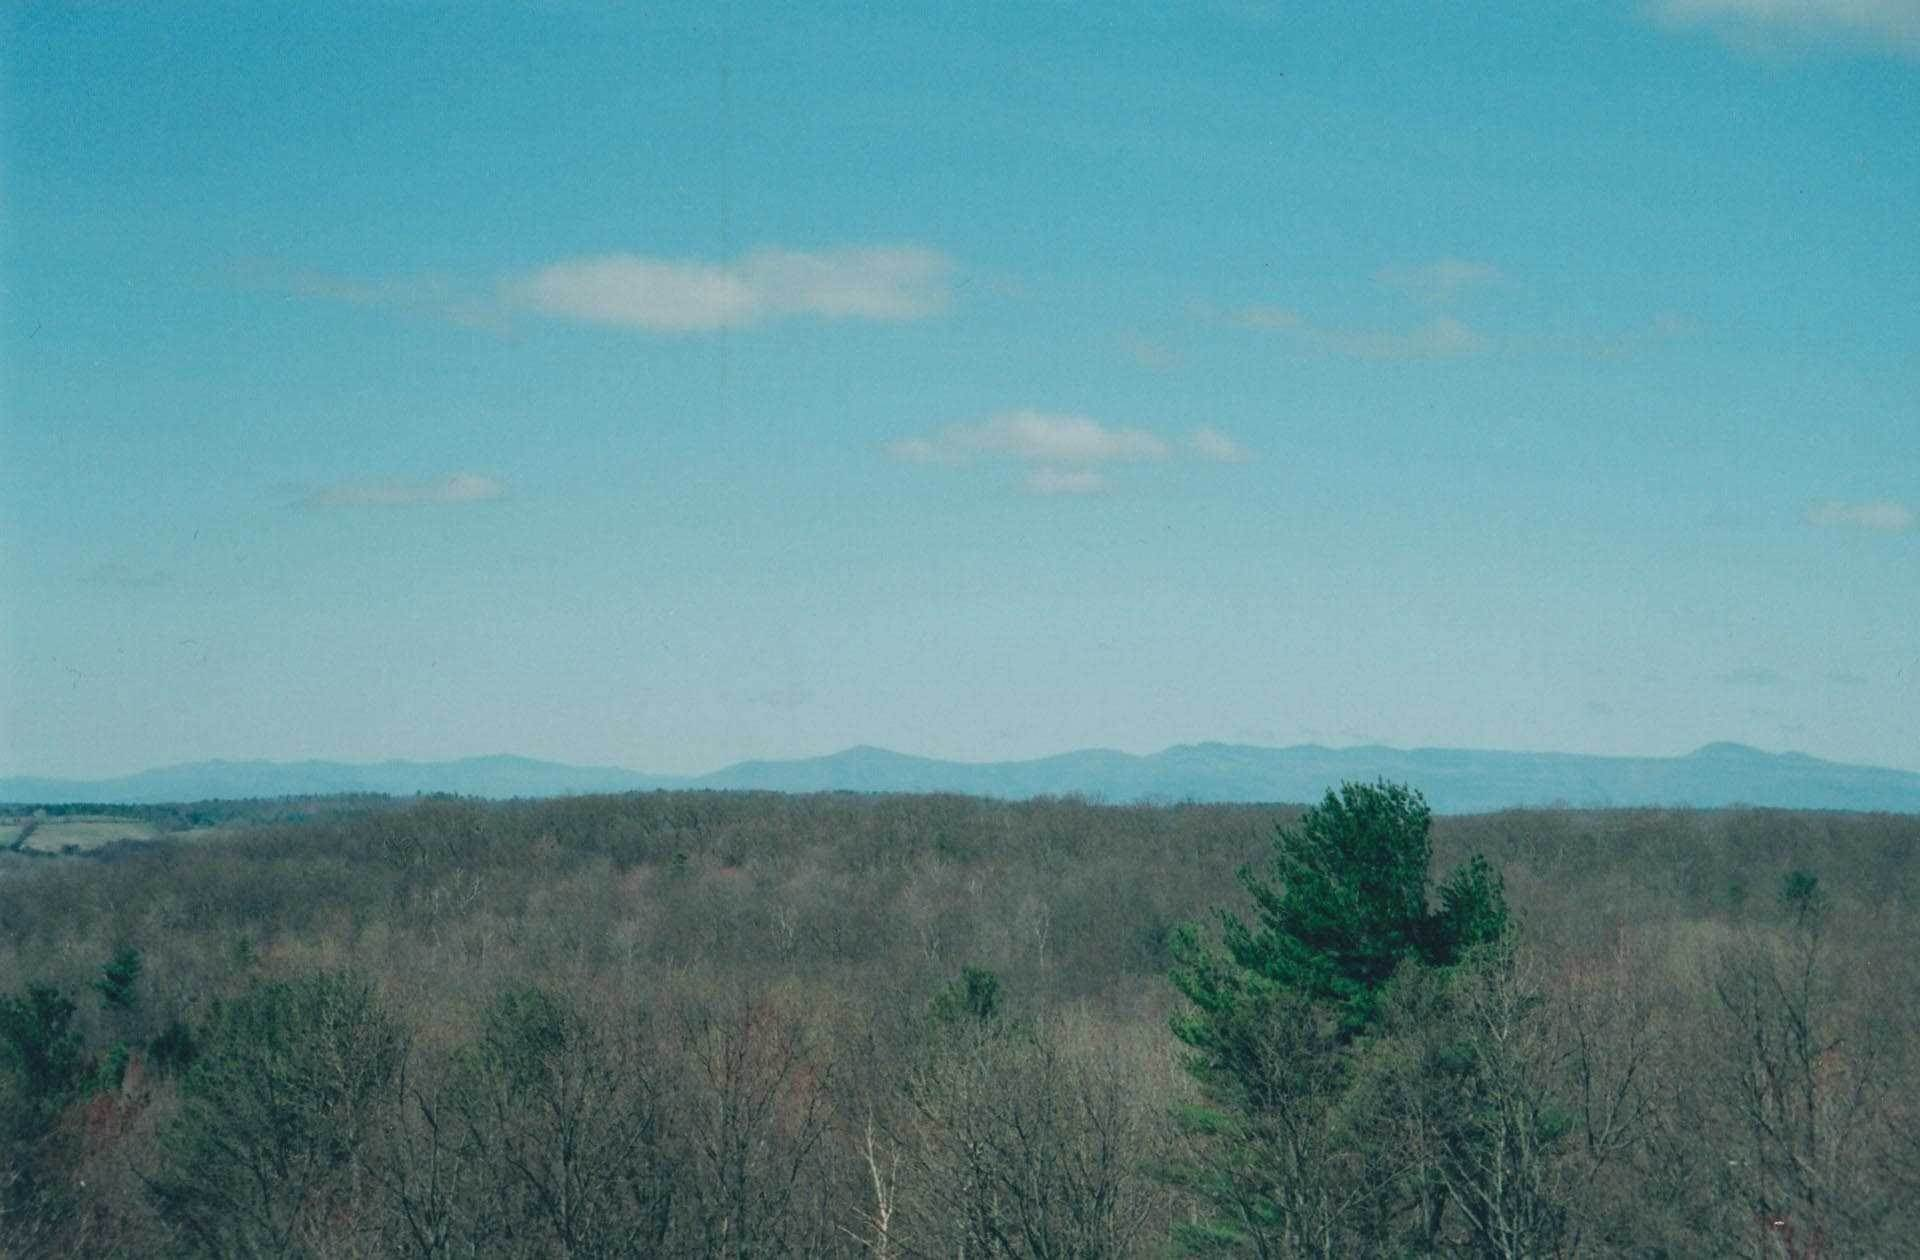 Land for Sale at 68 BERKSHIRE Road Taghkanic, New York 12521 United States